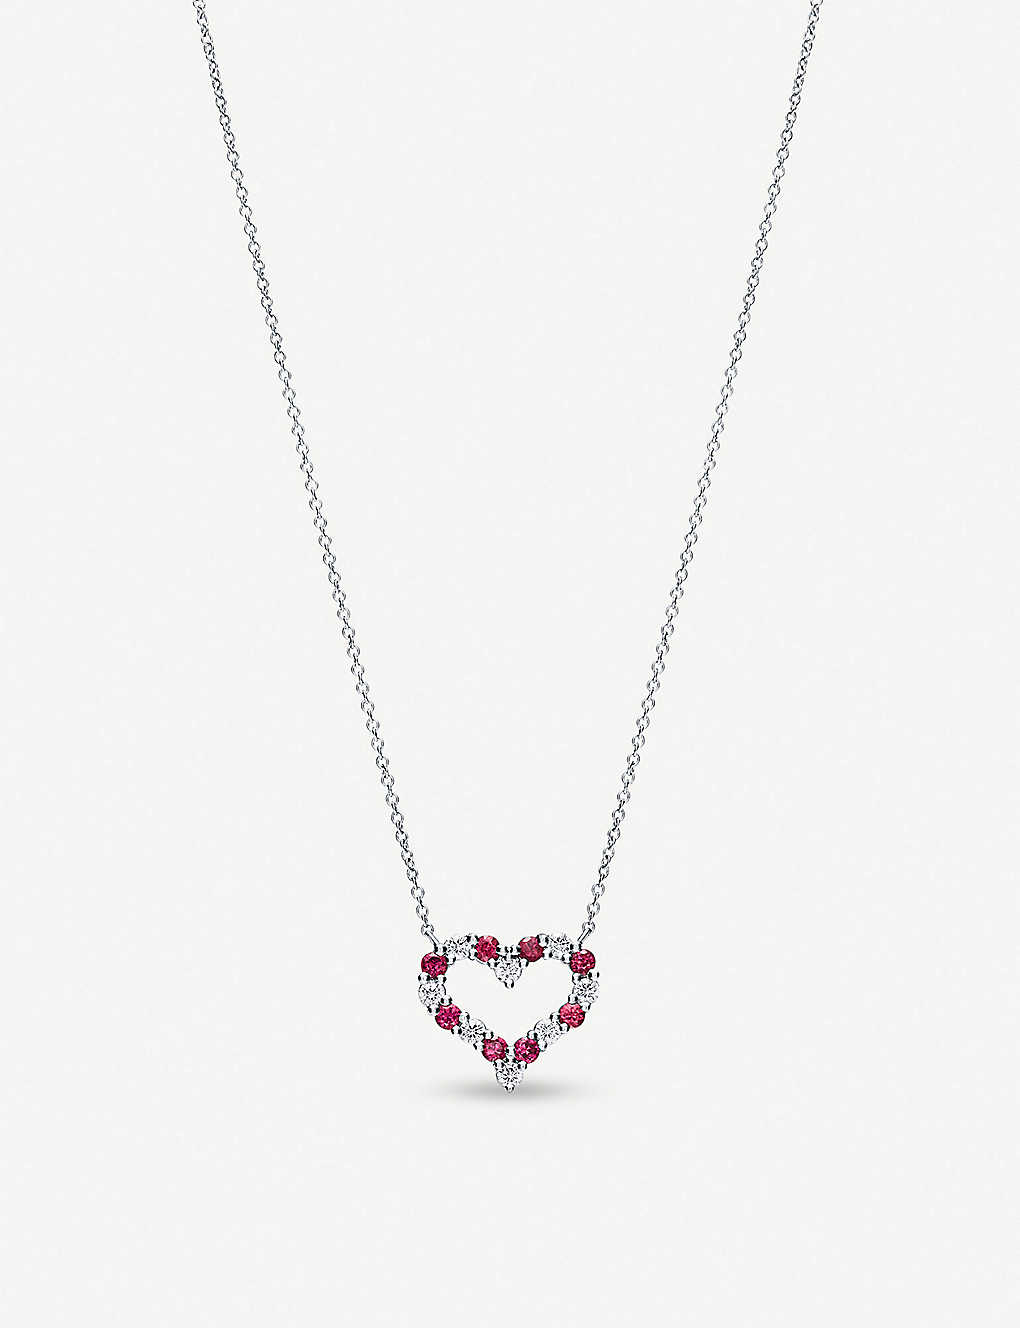 609e7d445f110 Heart platinum, ruby and diamond necklace